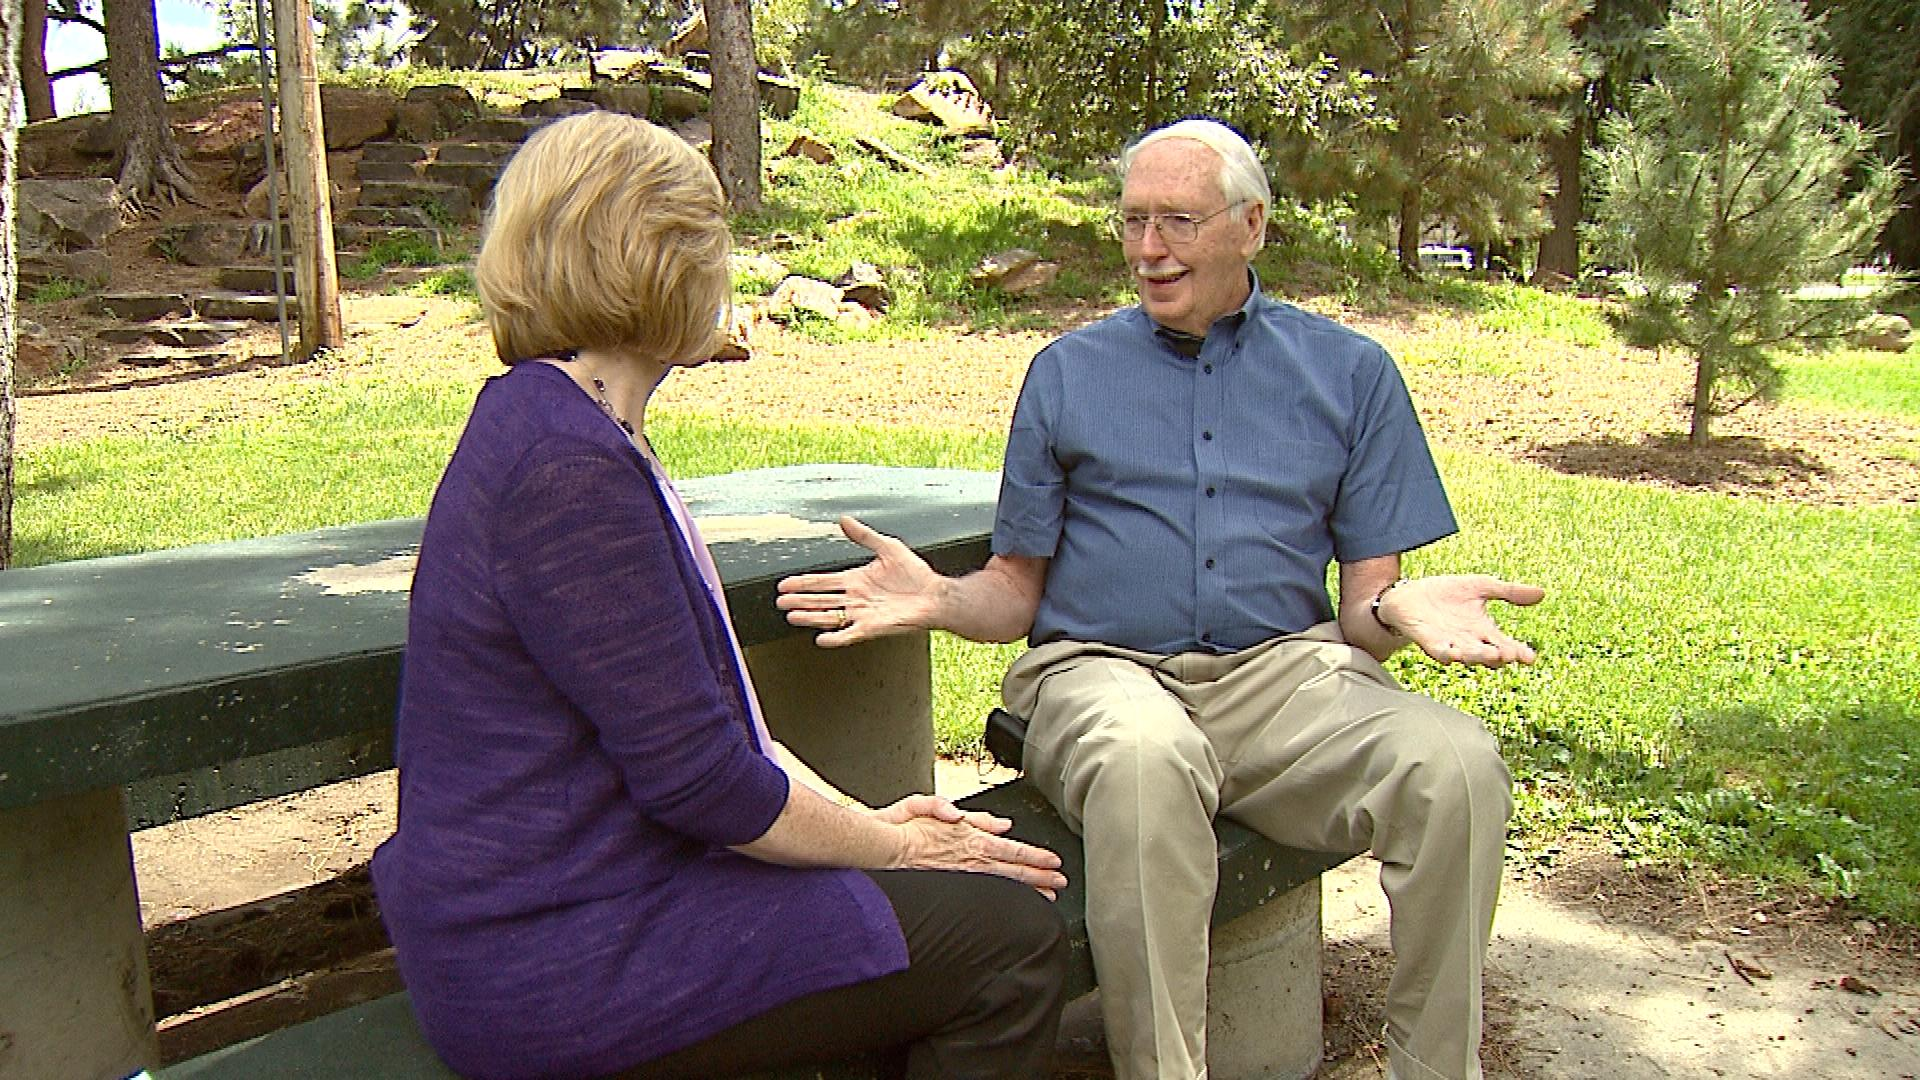 CBS4 Health Specialist Kathy Walsh talks with a happy AFib patient Jerry Lester (credit: CBS)